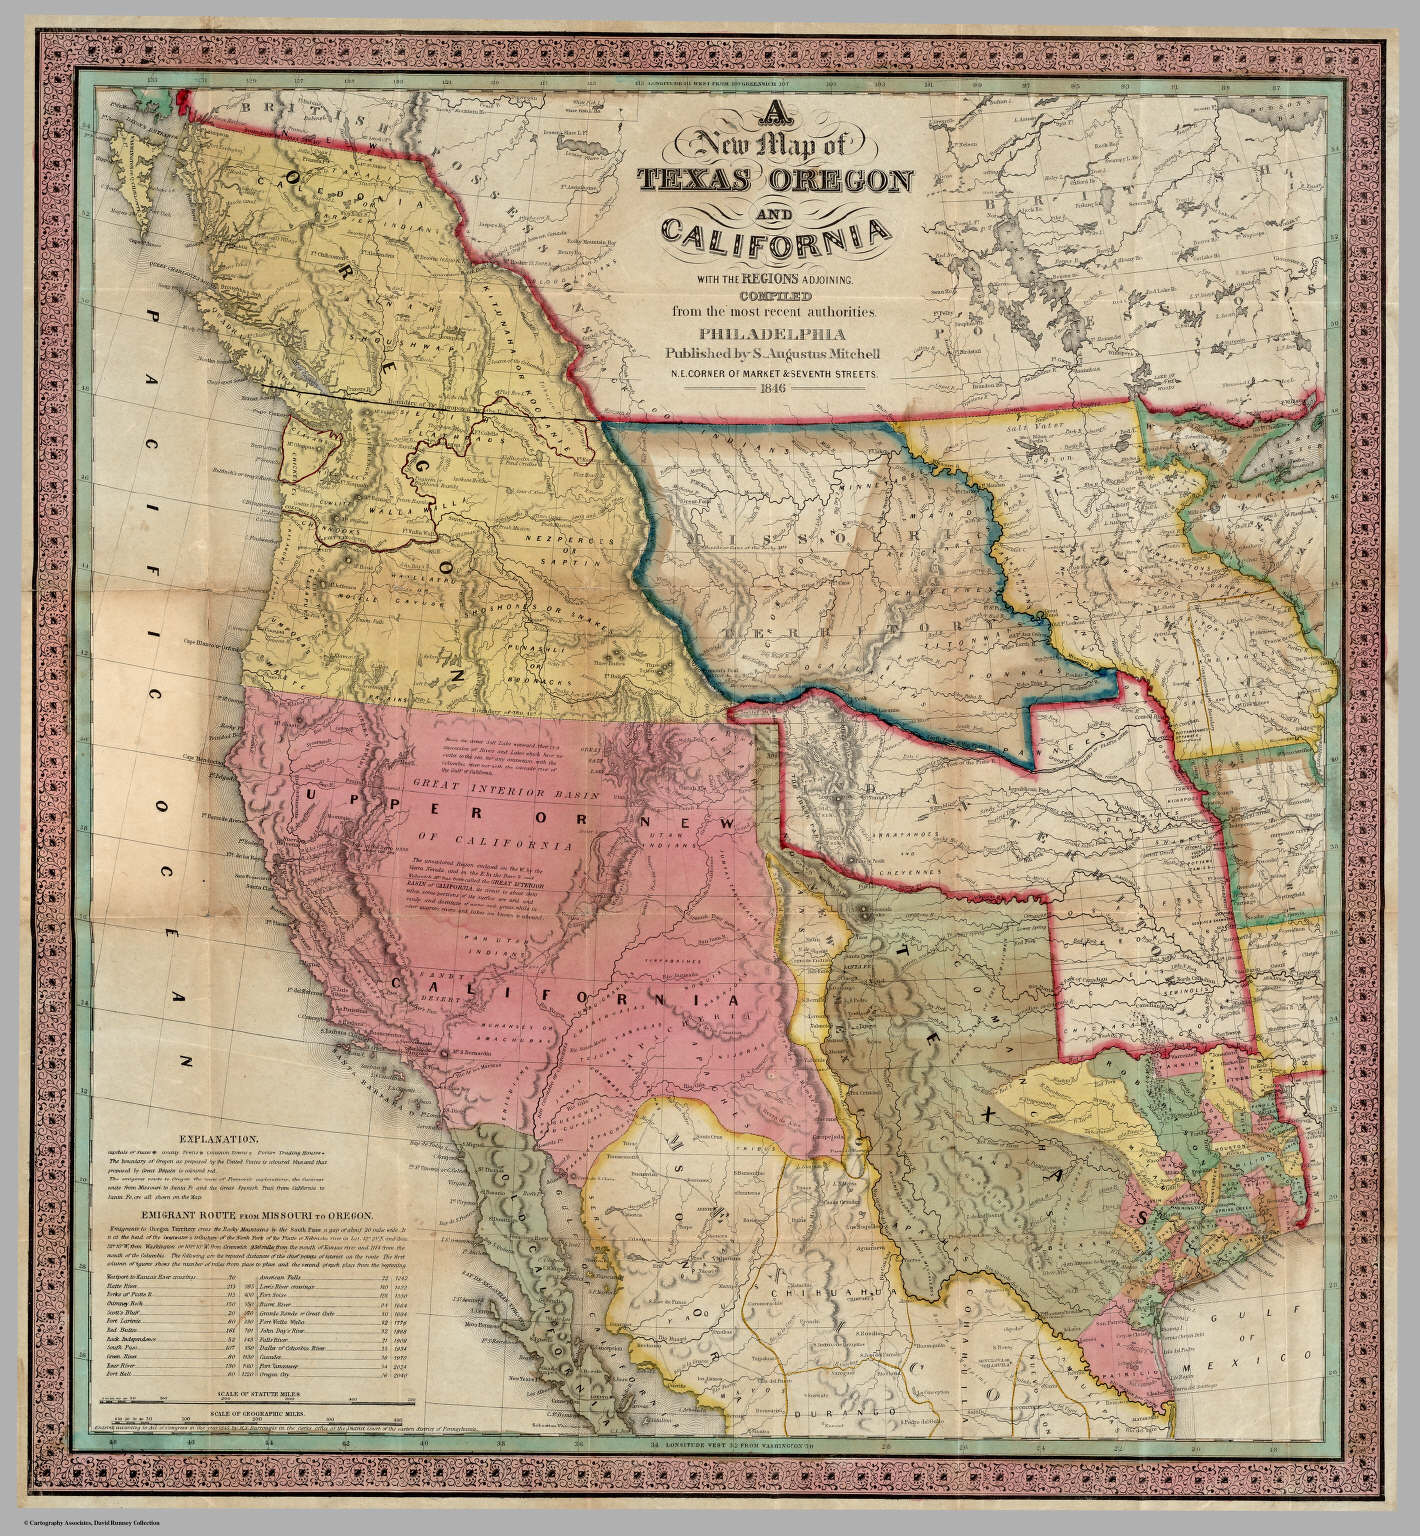 New Map of Texas Oregon and California With The Regions Adjoining